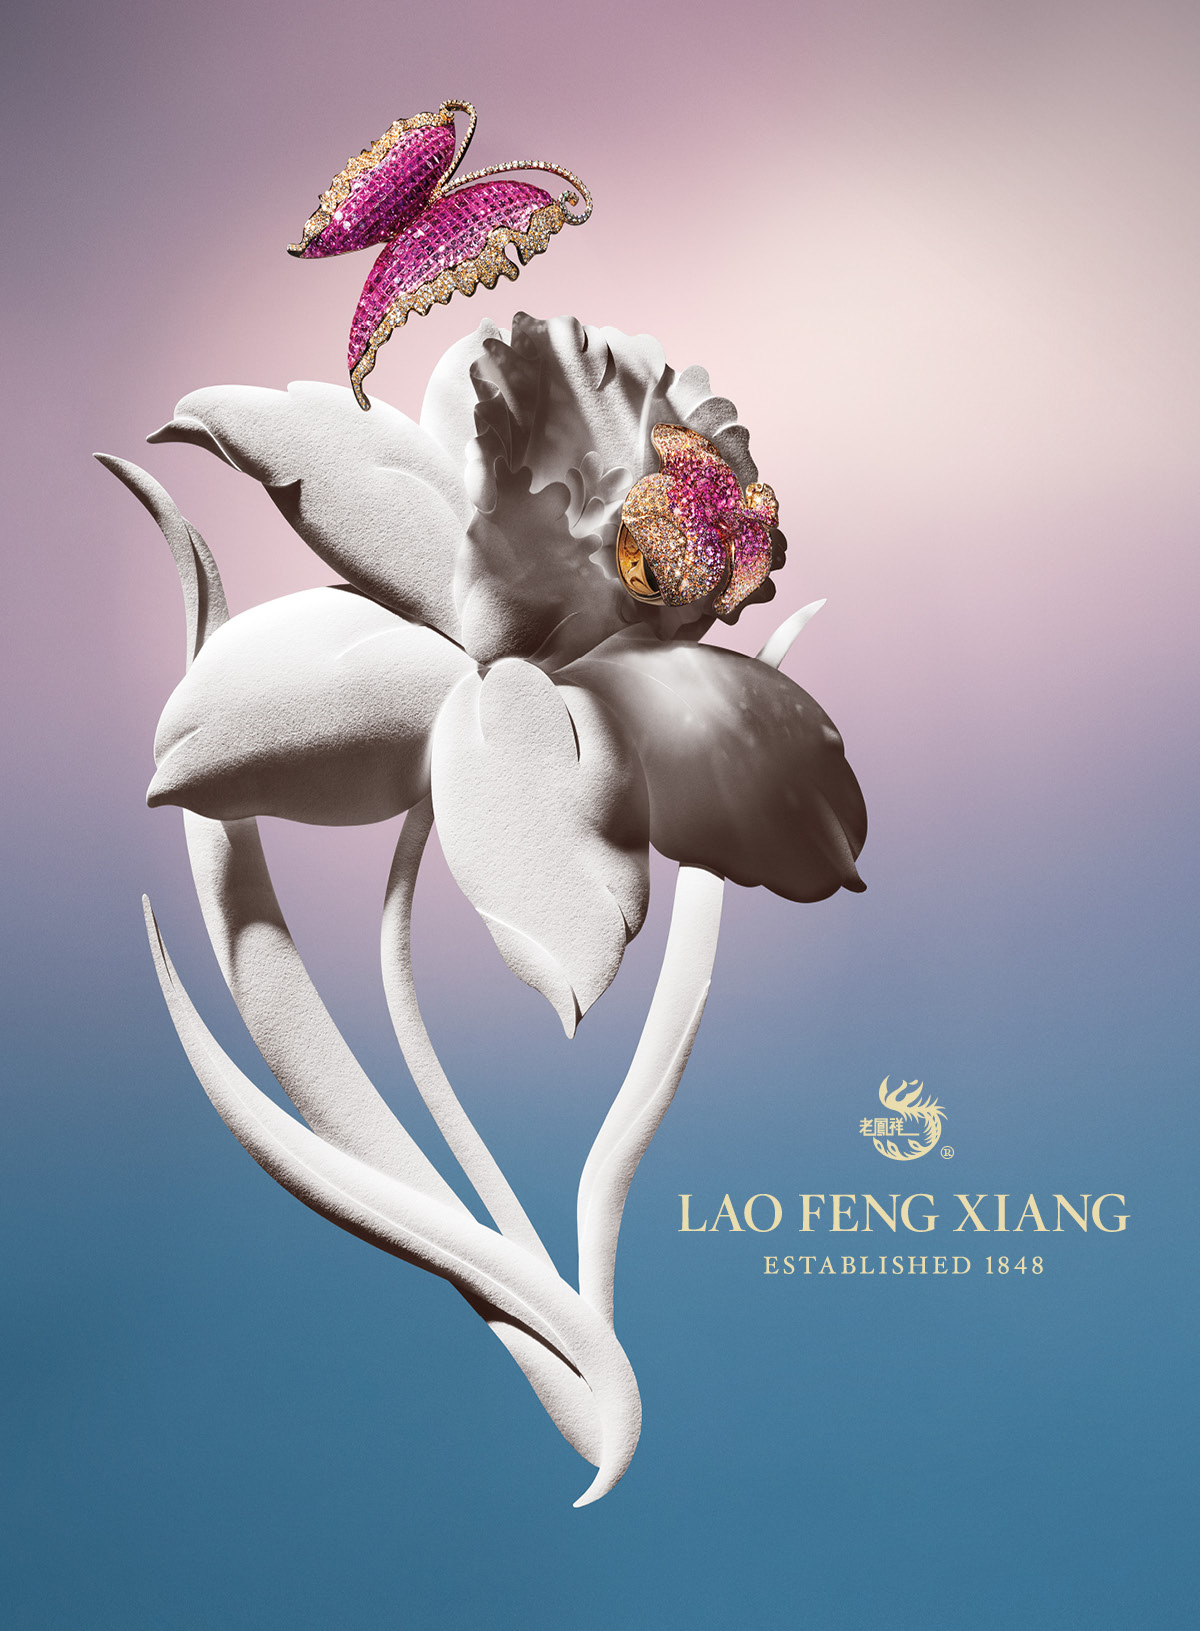 Luxury Fine Jewelry Brand  Lao Feng Xiang Advertising Campaign Creative Direction  by Benard Creative.